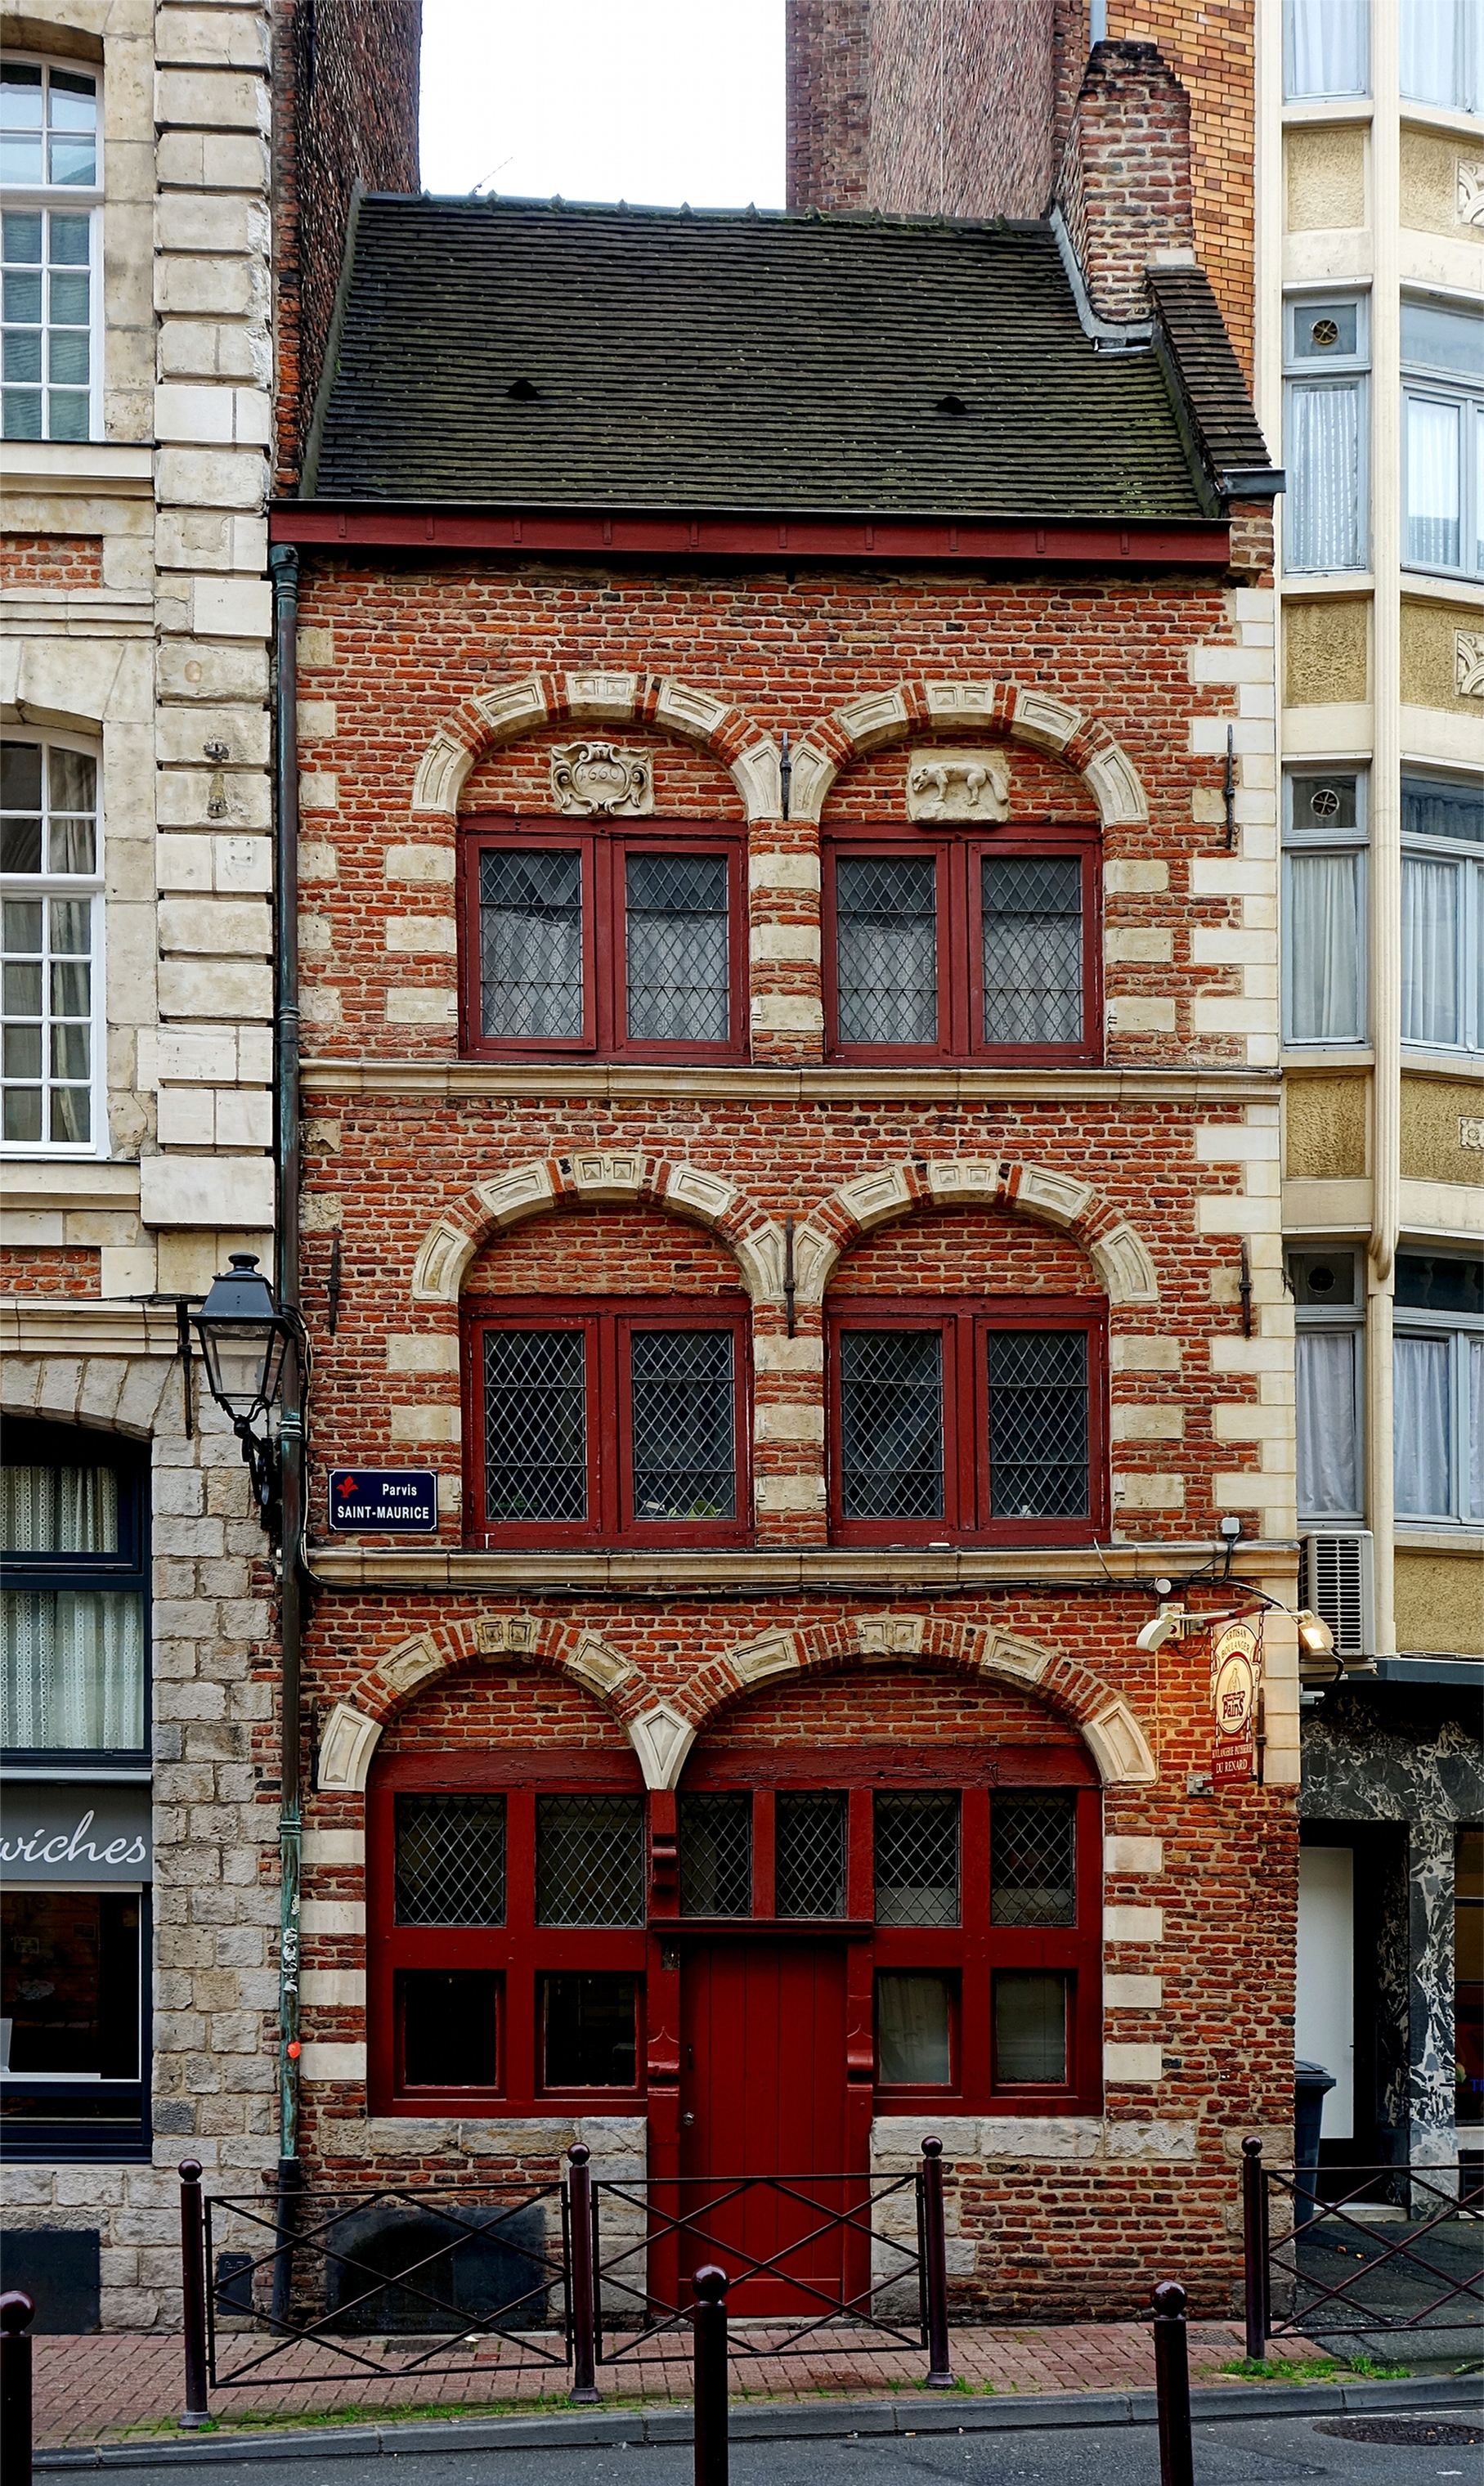 https://upload.wikimedia.org/wikipedia/commons/b/b0/Lille_maison_renard.JPG